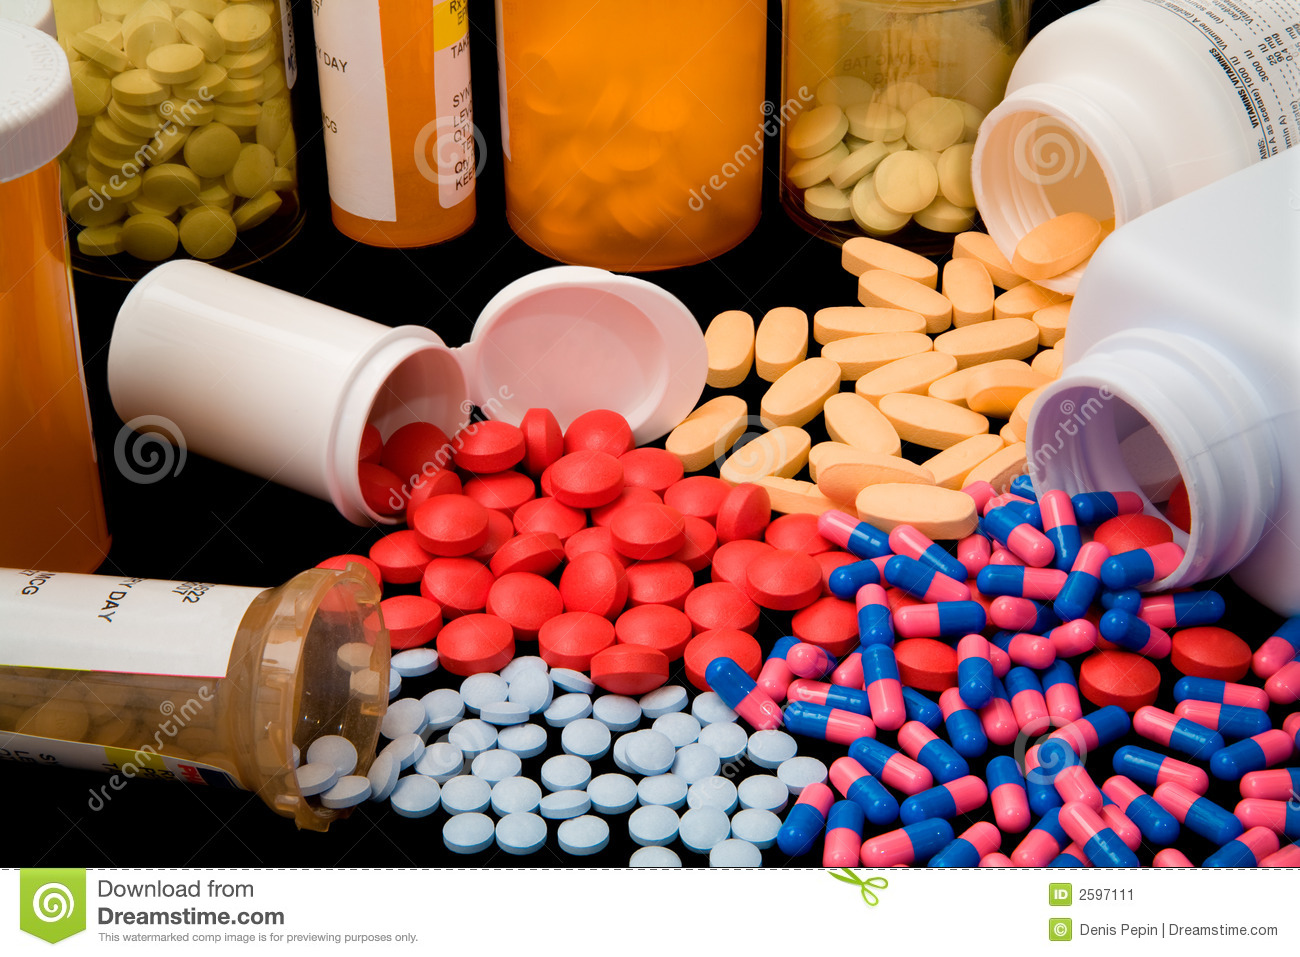 medical states map with Stock Image Pharmaceutical Products Image2597111 on Stock Images Dna 1 Image6352334 besides Stock Image Human Bladder Image10332951 in addition Stock Illustration Earache Vector Illustration Image53855968 besides Basal Cell Carcinoma Basalioma likewise After Passing Fidel Whats Next Us Cuban Relations.